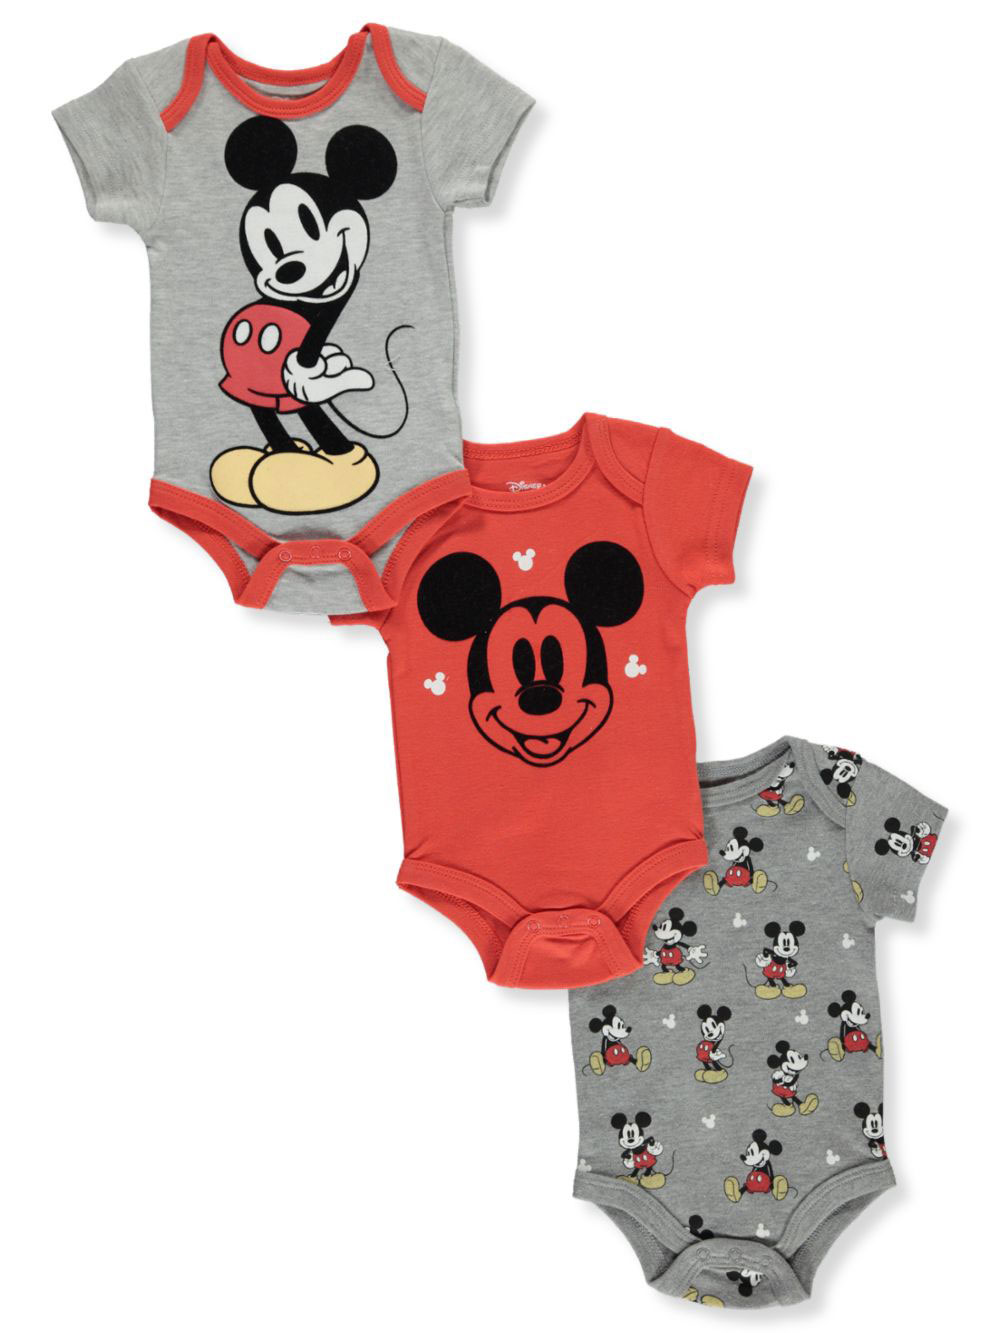 Boys Red and Gray Bodysuits